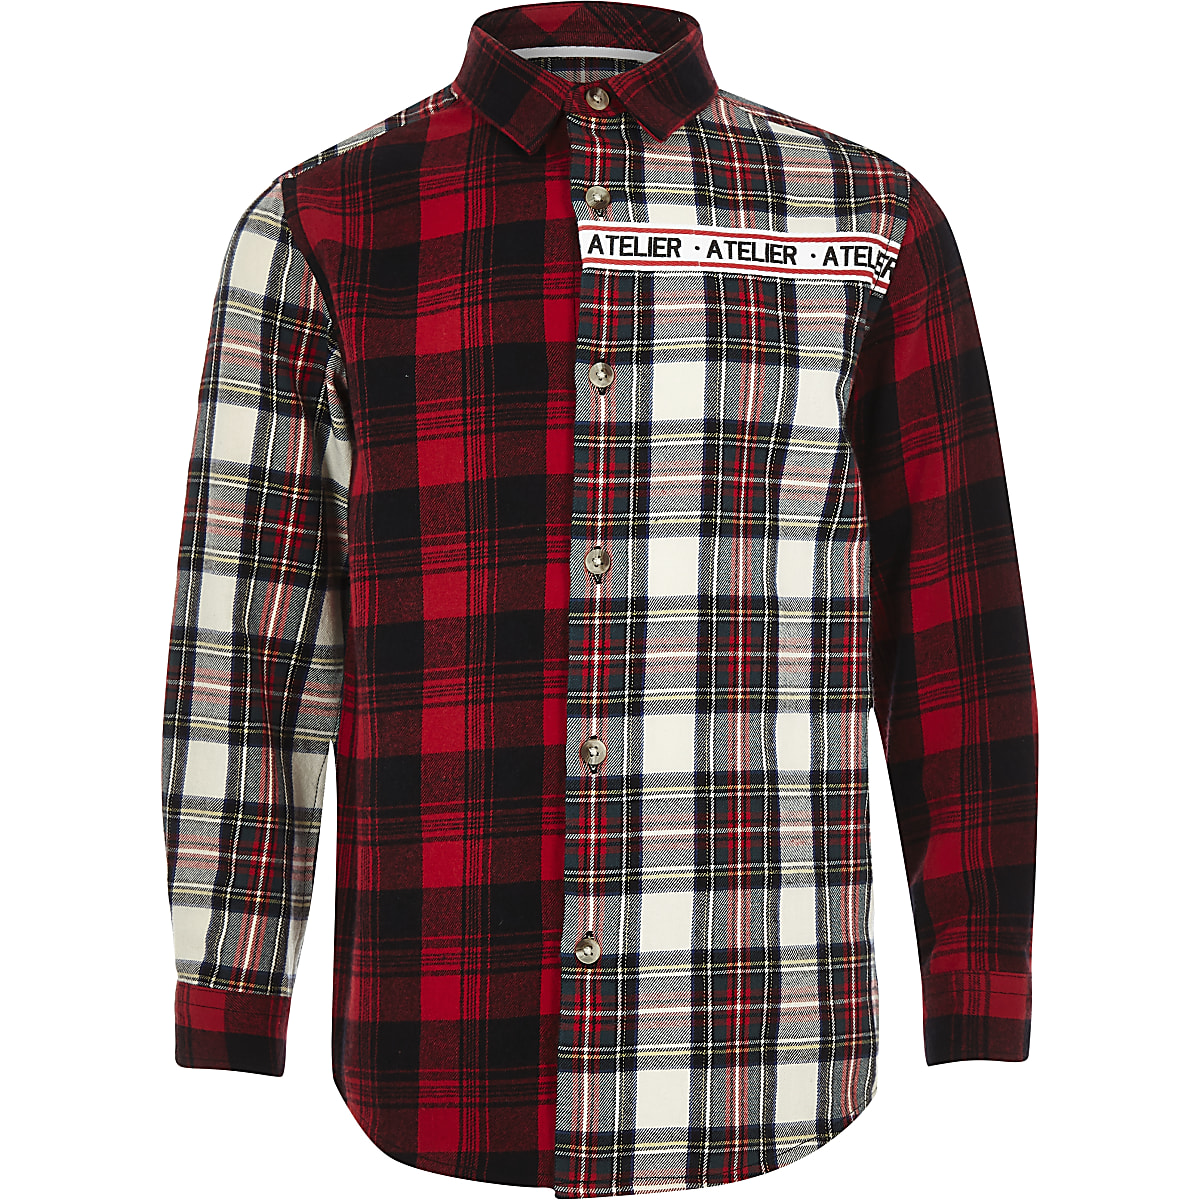 Boys red 'Atelier' check shirt